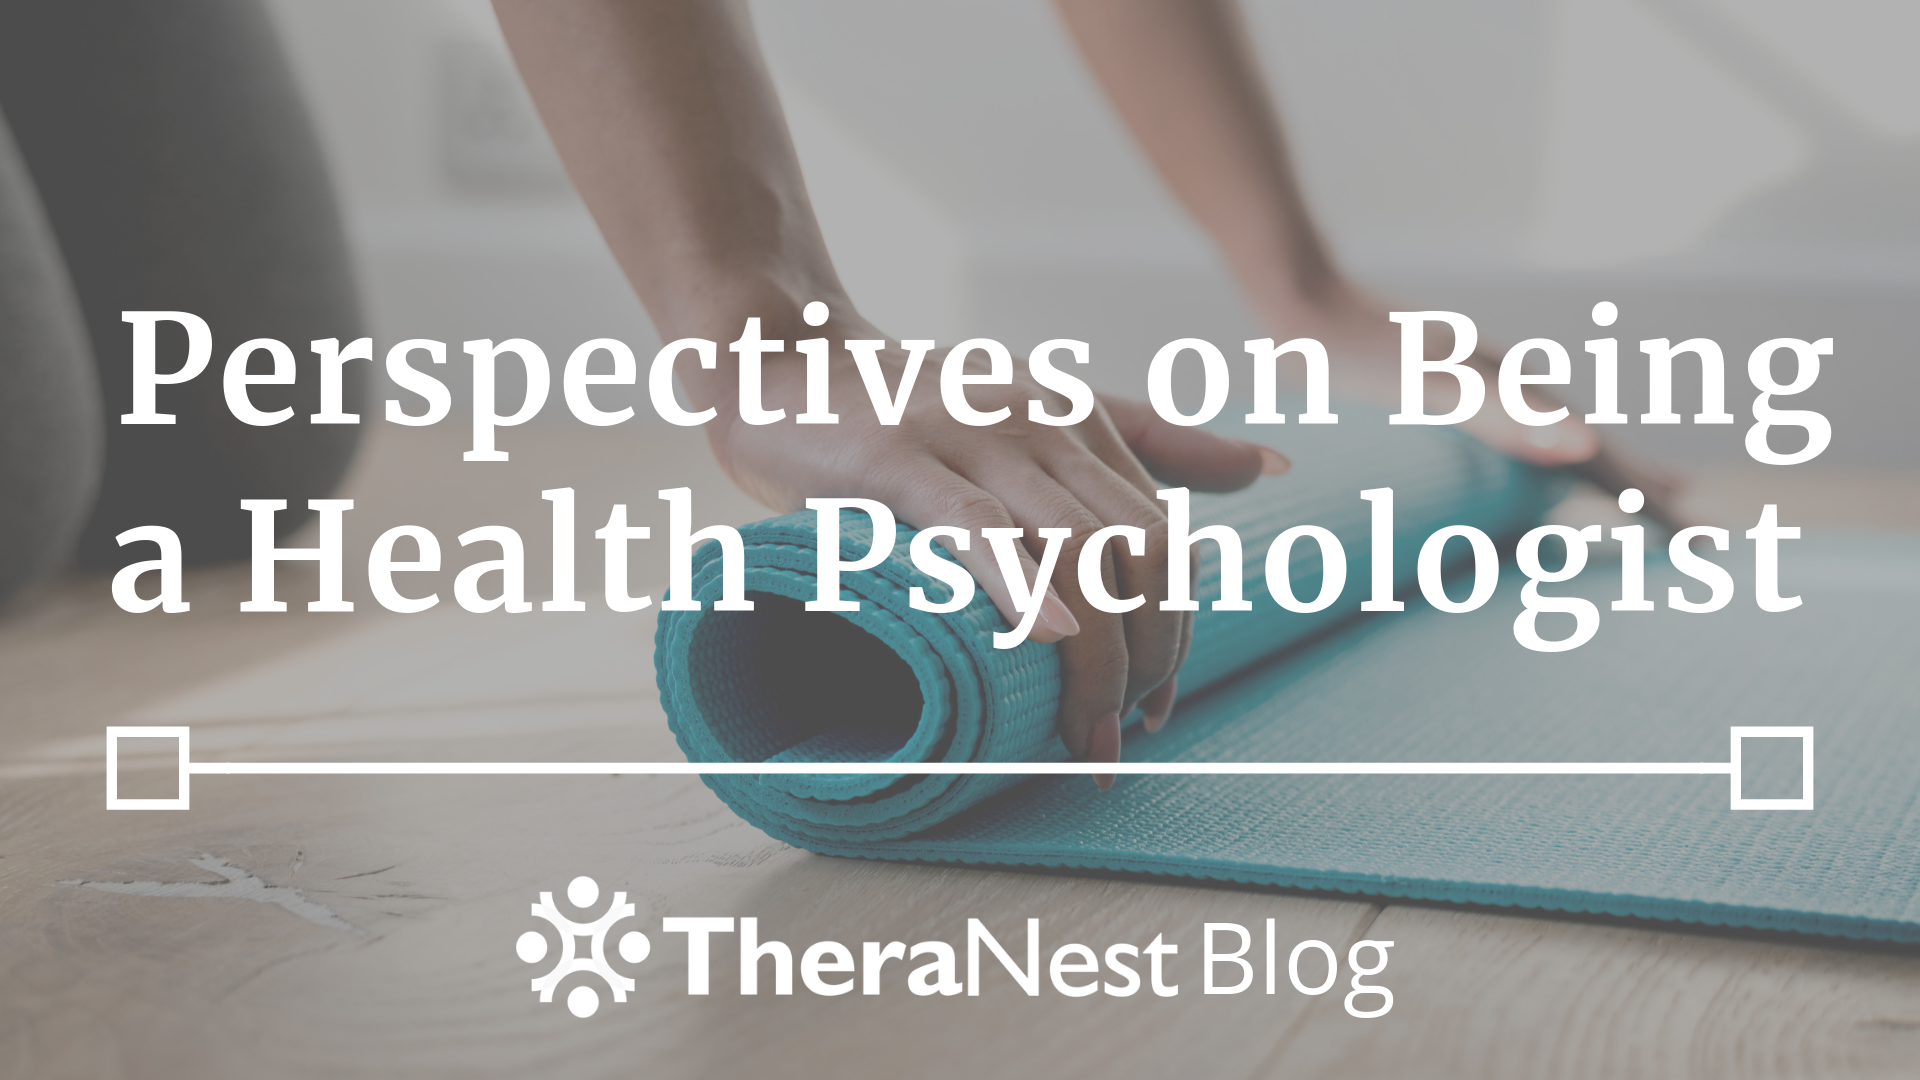 Perspectives on Being a Health Psychologist - Title Image - TheraNest Blog